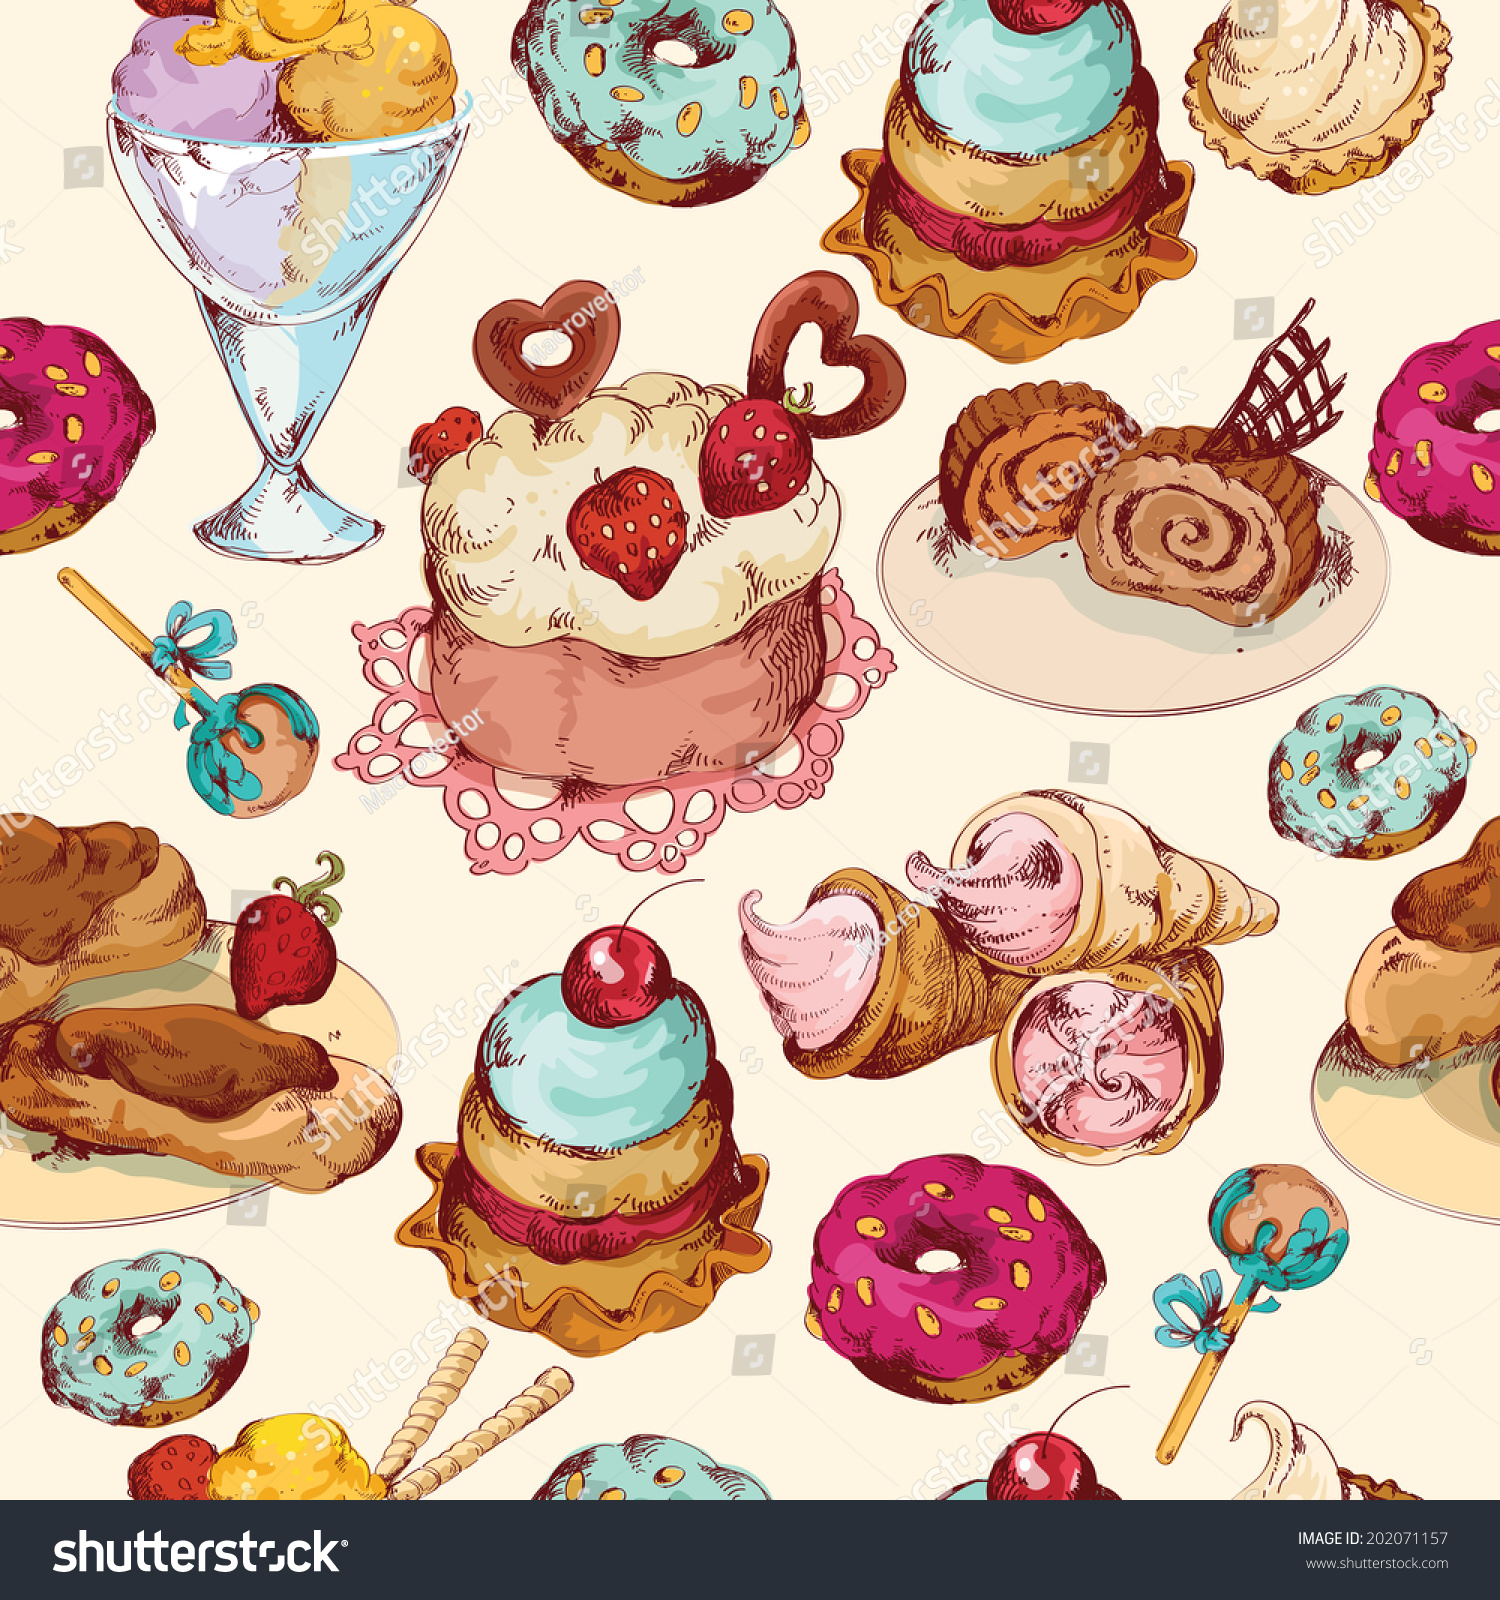 Sweet Ice Cream Flat Colorful Seamless Pattern Vector: Food Sweets Bakery Pastry Ice Cream And Candies Sketch